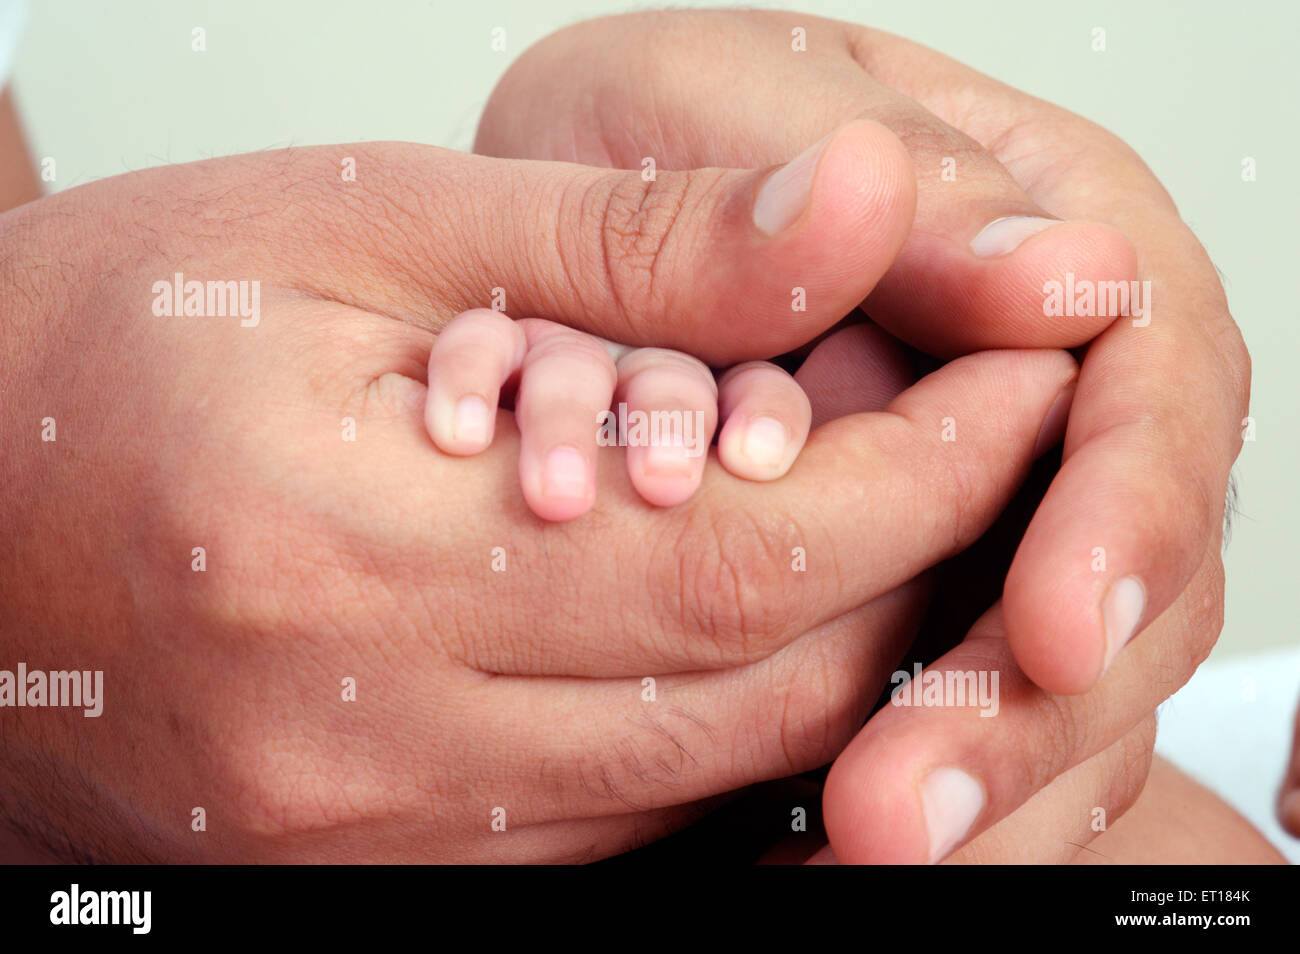 Father holding hand of new born baby - MR#736J and  MR#736LA - Stock Image